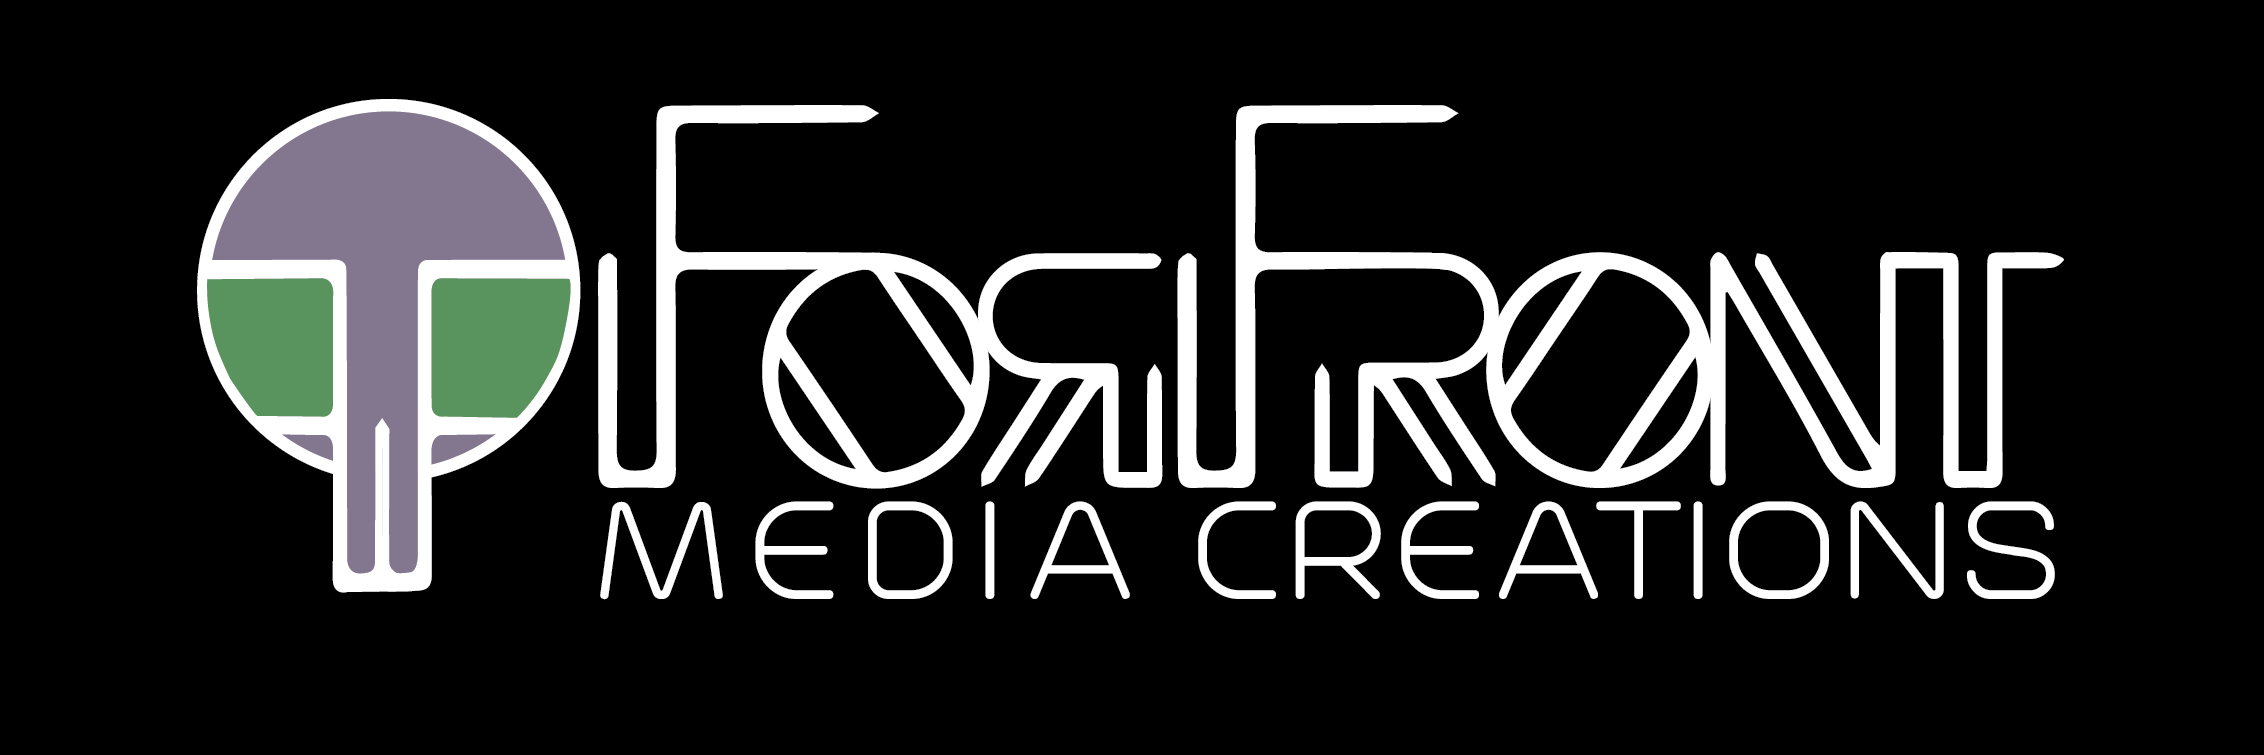 ForFront Media Creations